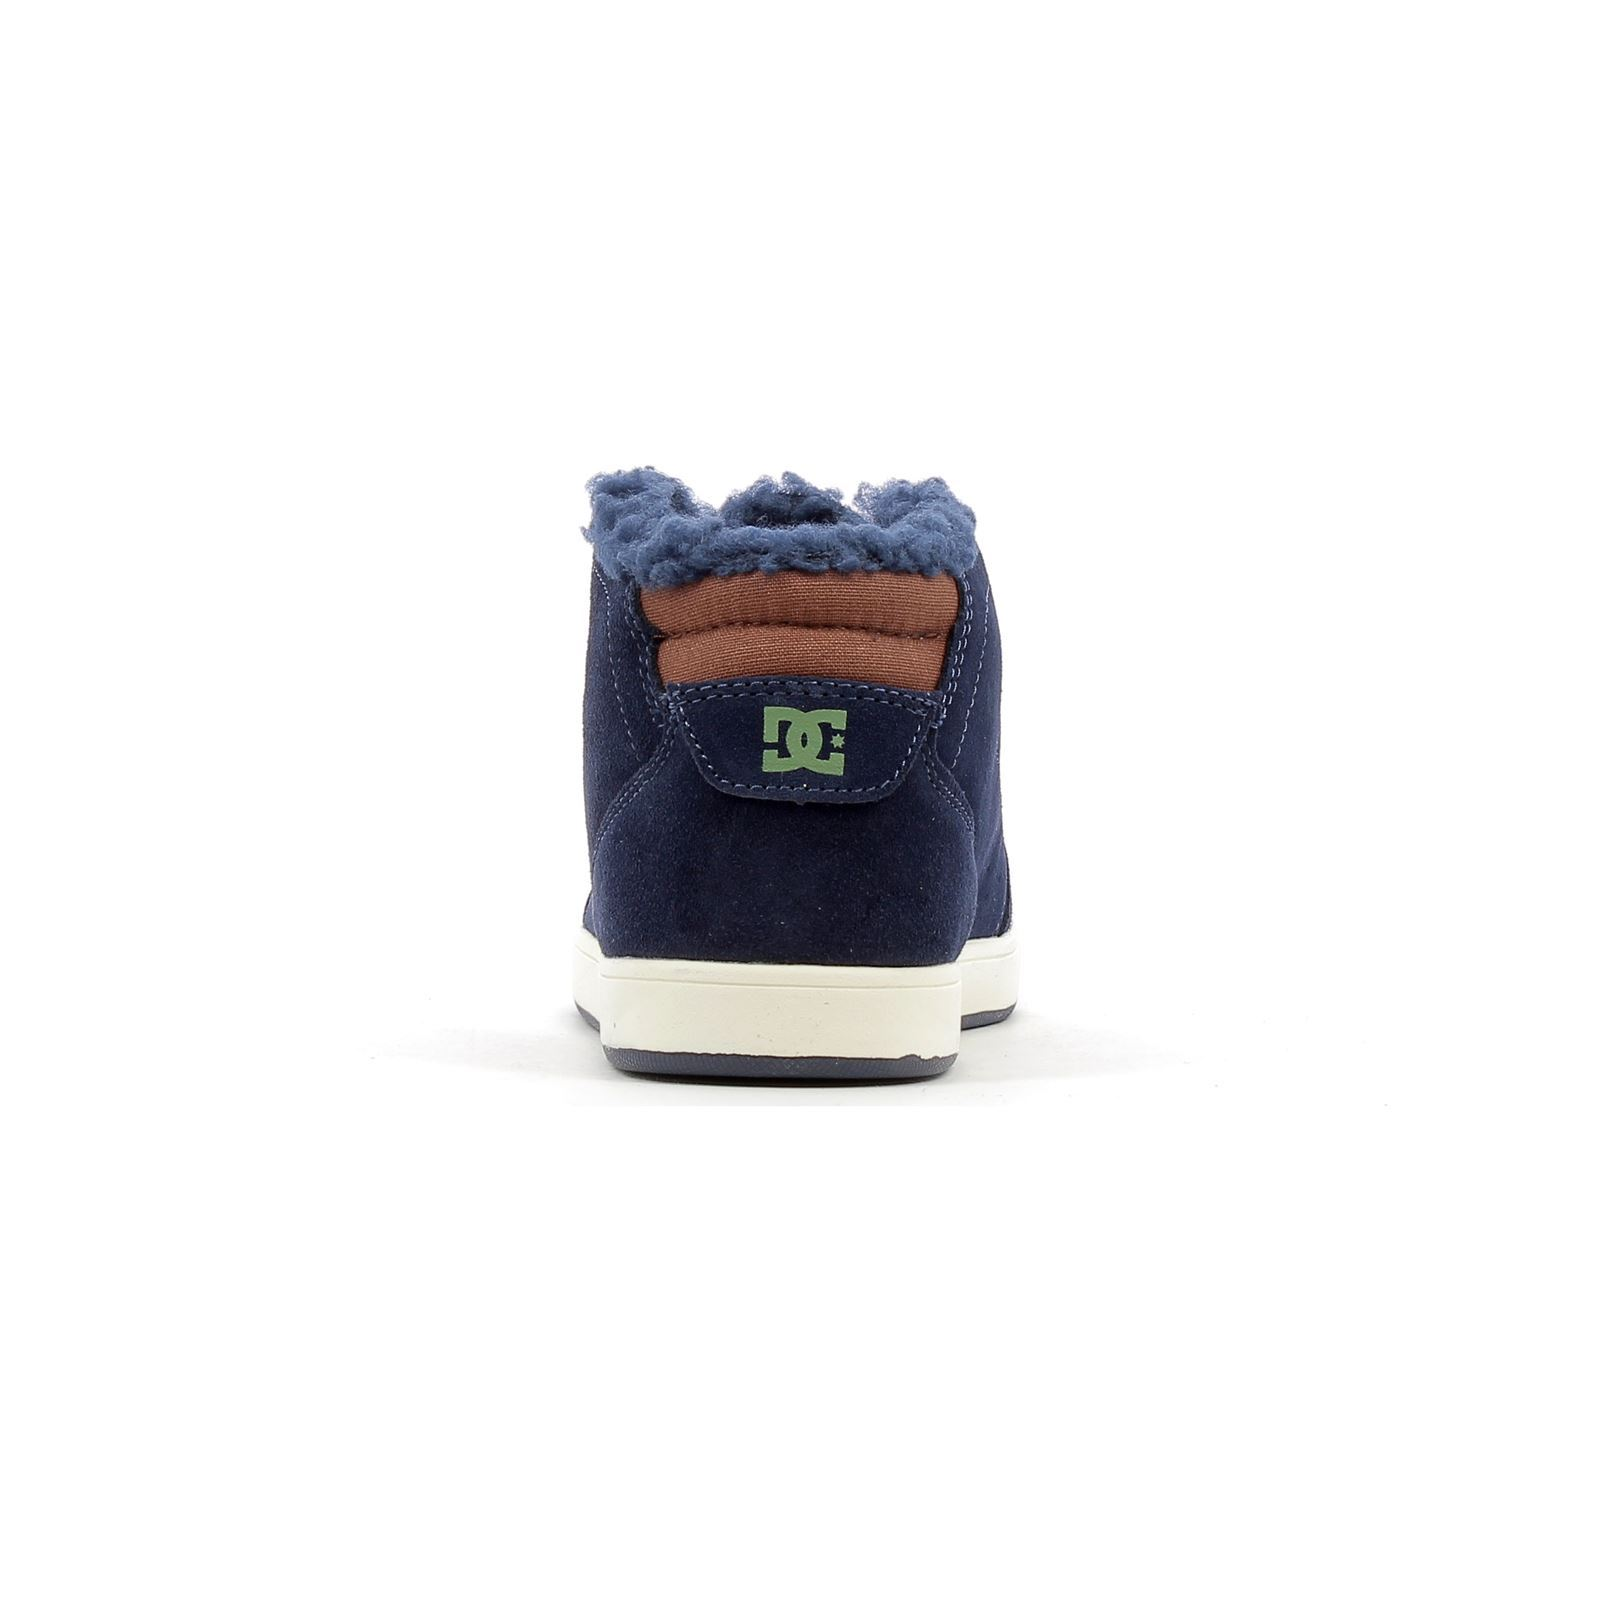 Dc Bleu Shoes Crisis Montantes Brandalley Baskets High Marine Wnt rFzSqr